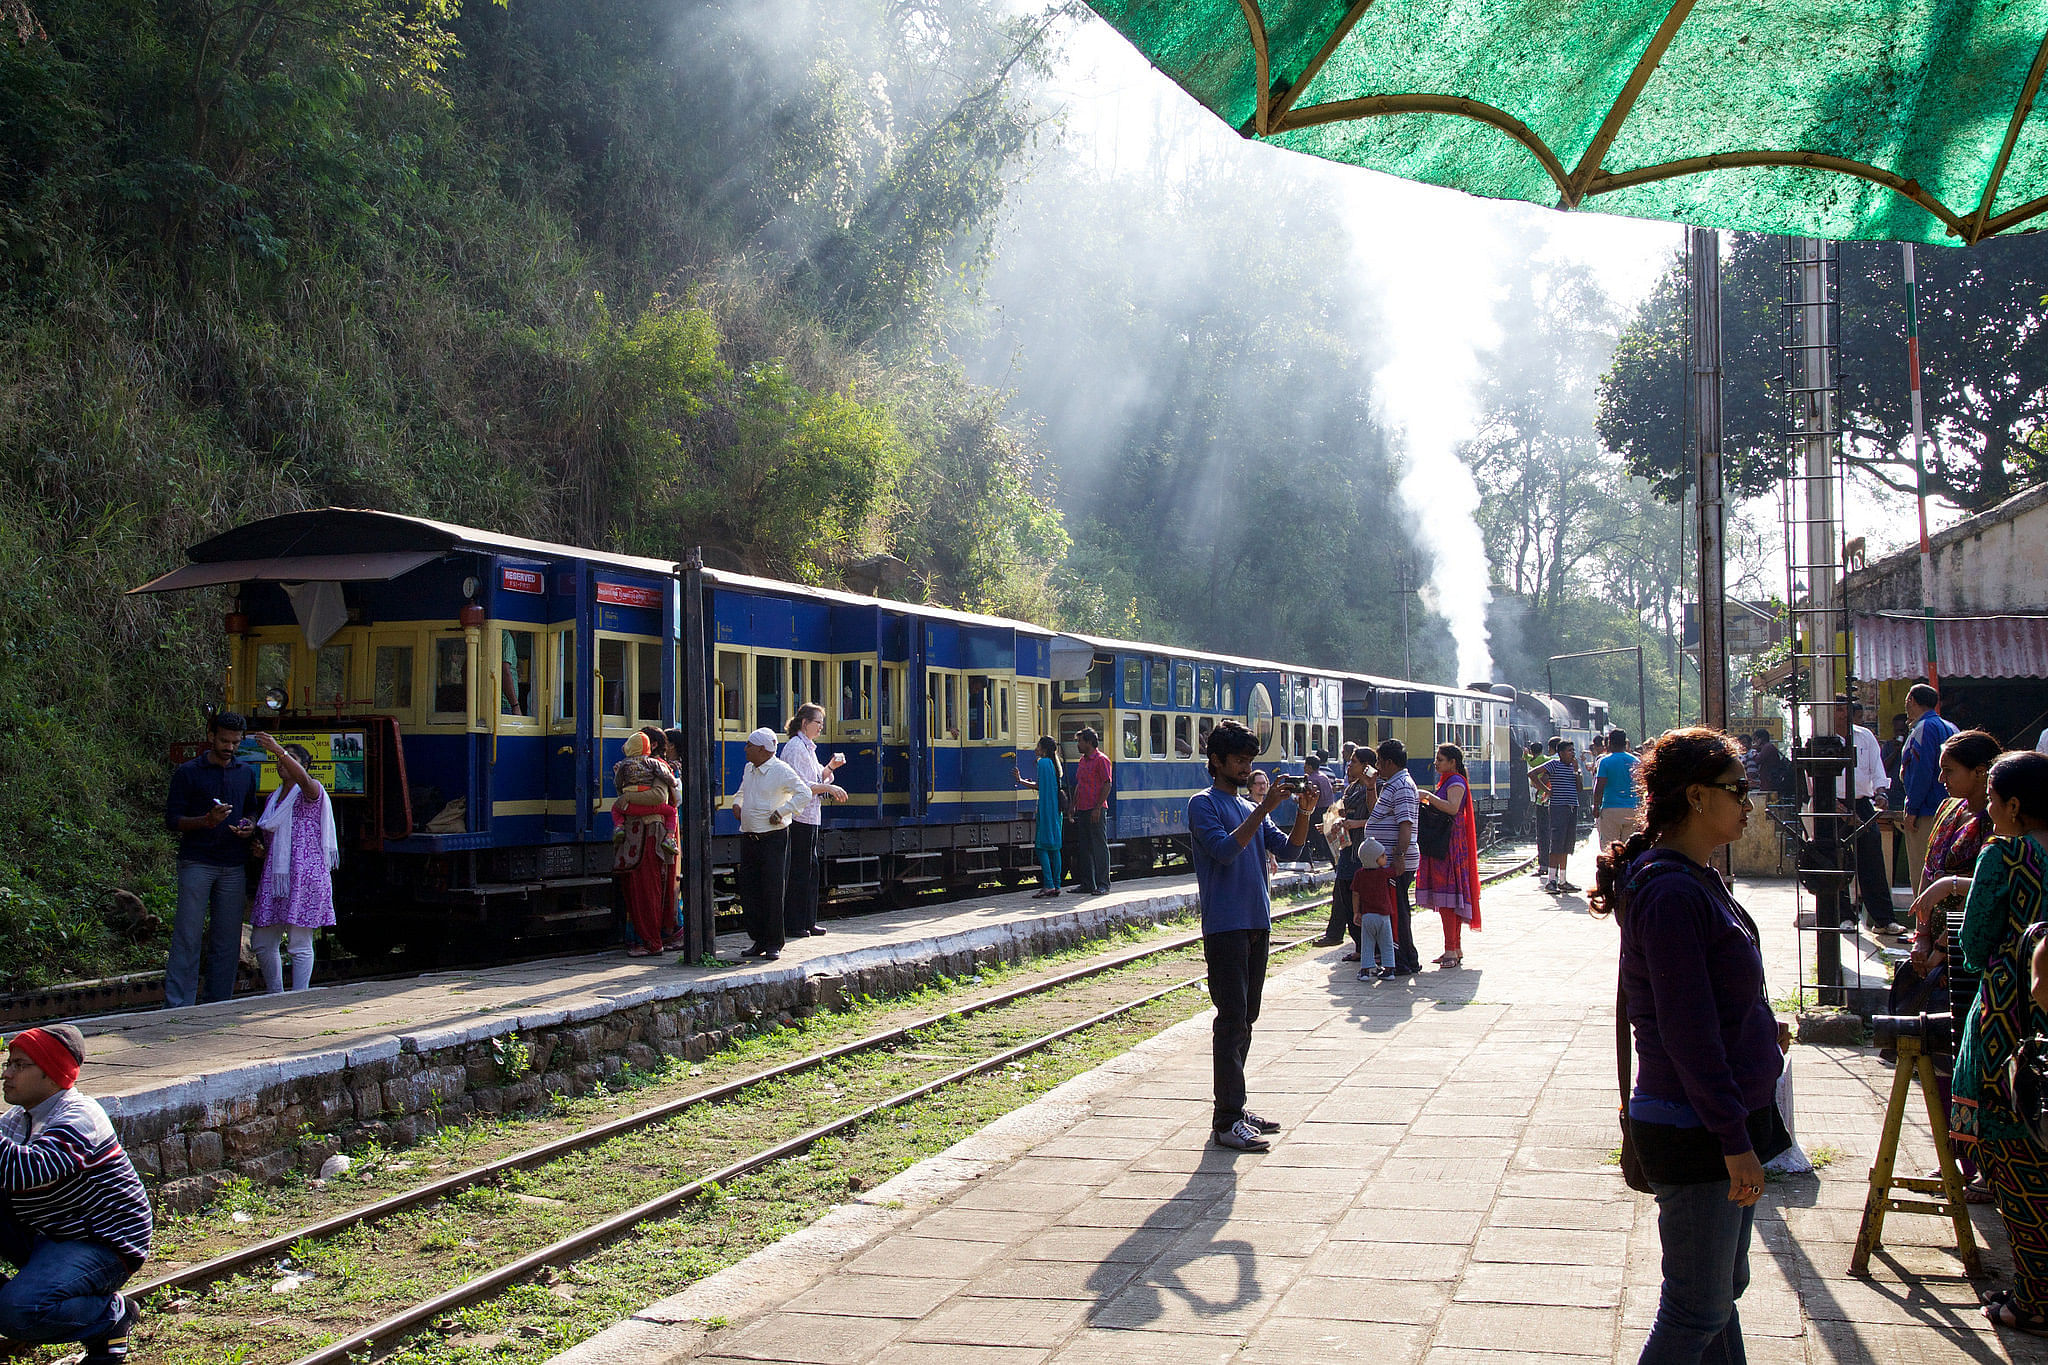 The Nilgiri Mountain Railway, cutting across the lush green hill side, with the engine at the back, pushing the train up the hills